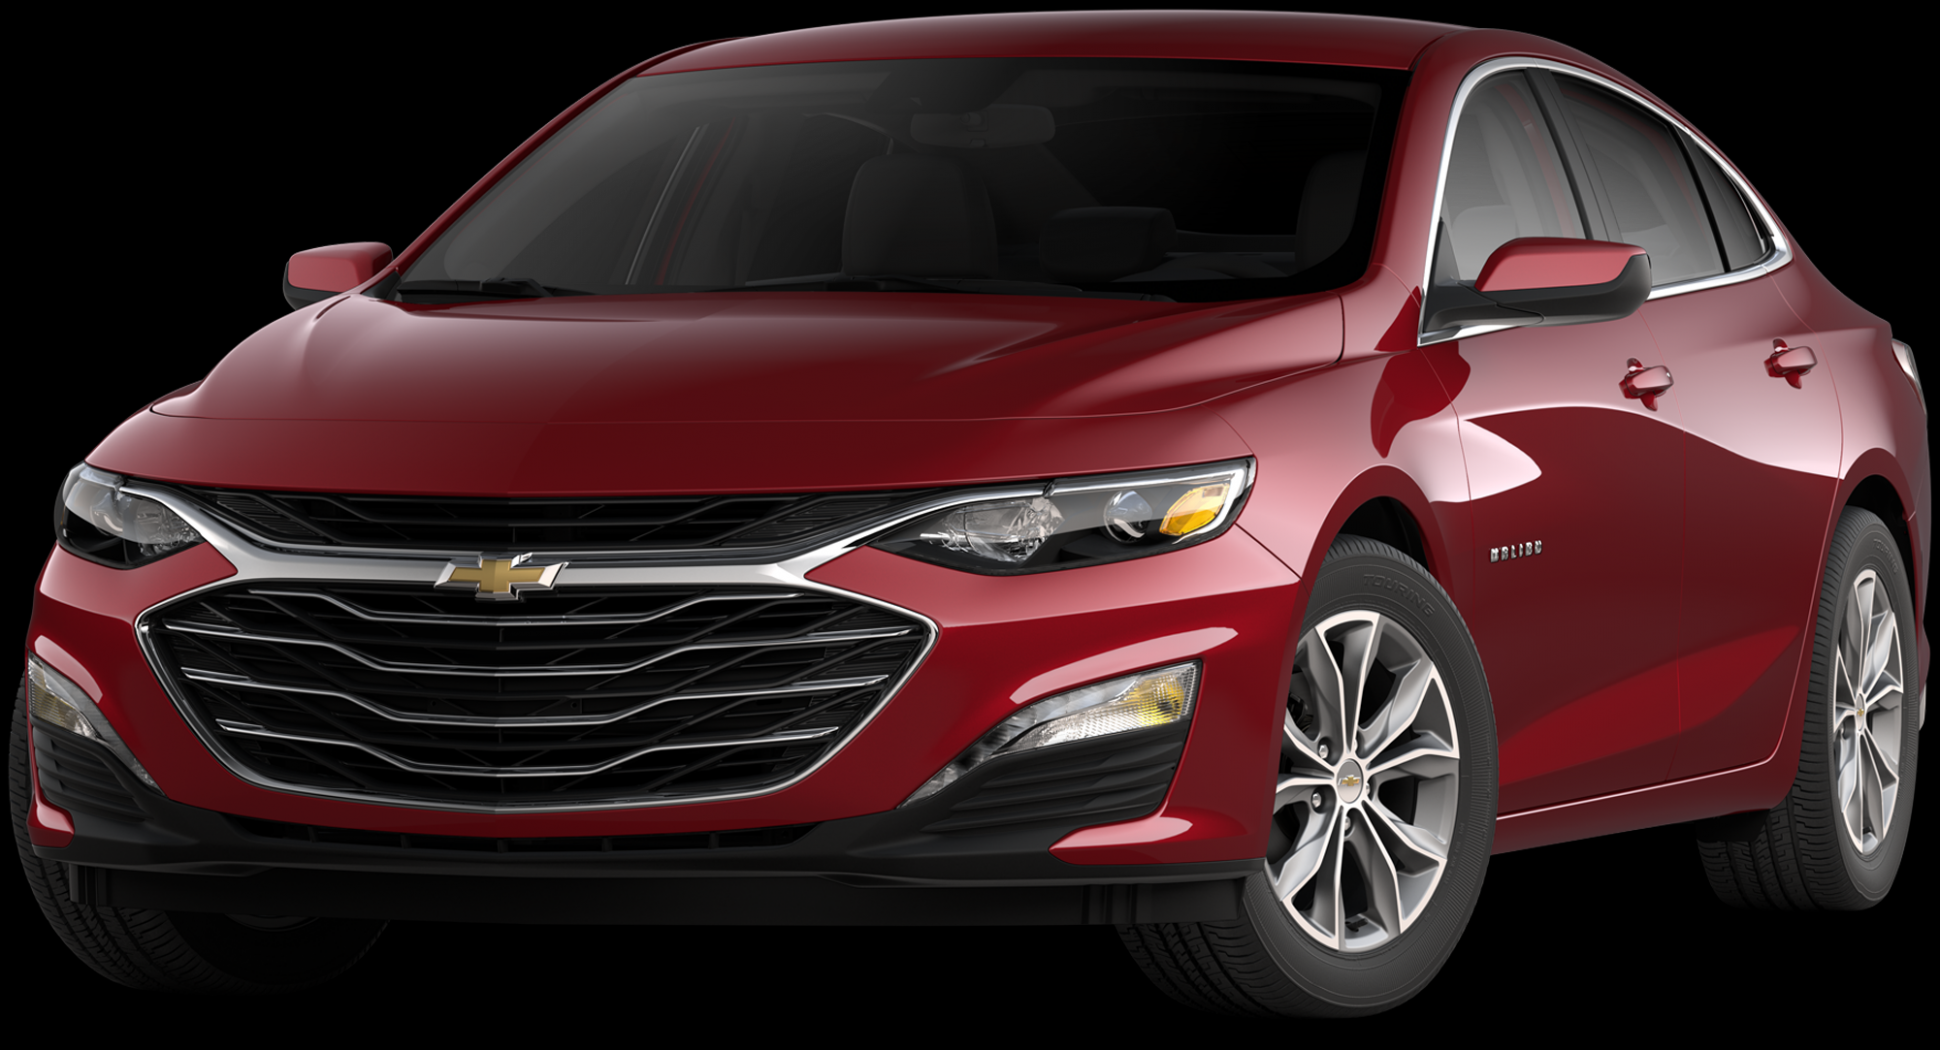 9 Chevrolet Malibu Hybrid Incentives, Specials & Offers in ..